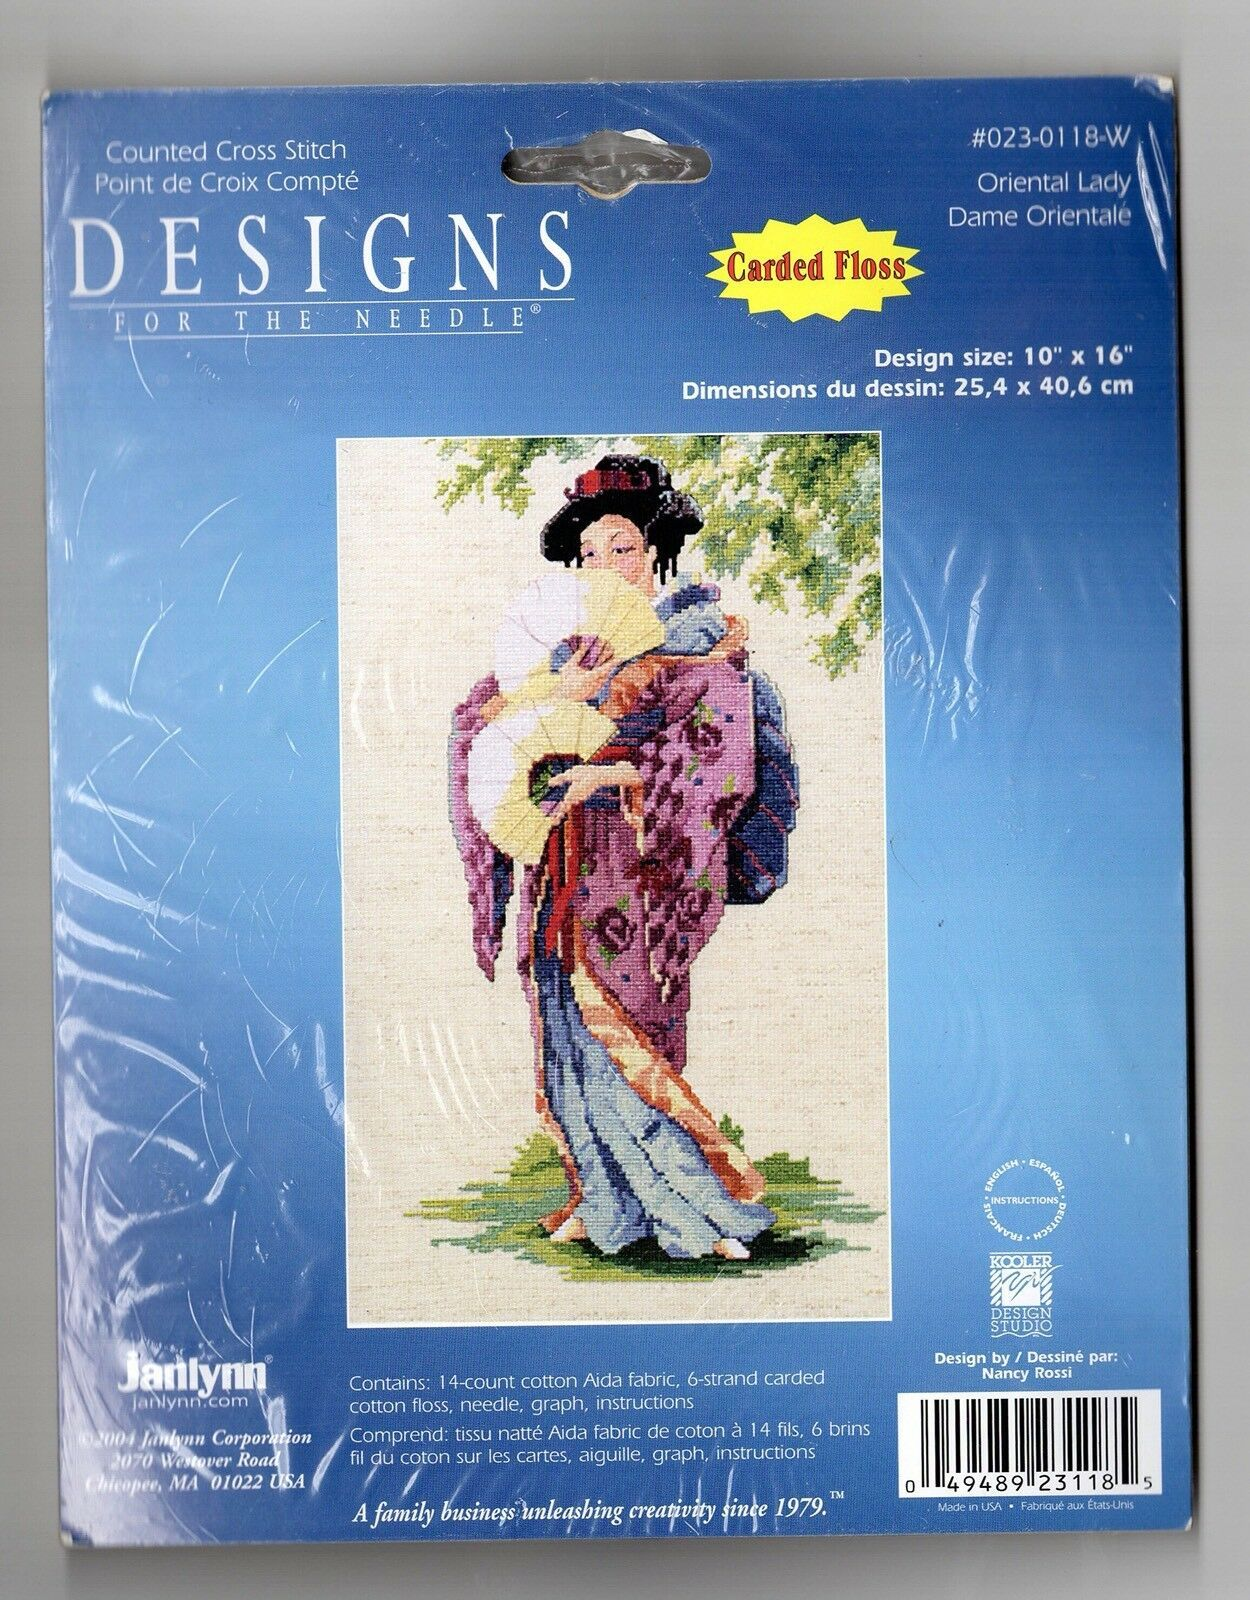 Primary image for Janlynn Oriental Lady Counted Cross Stitch Kit Designs For The Needle 10x16